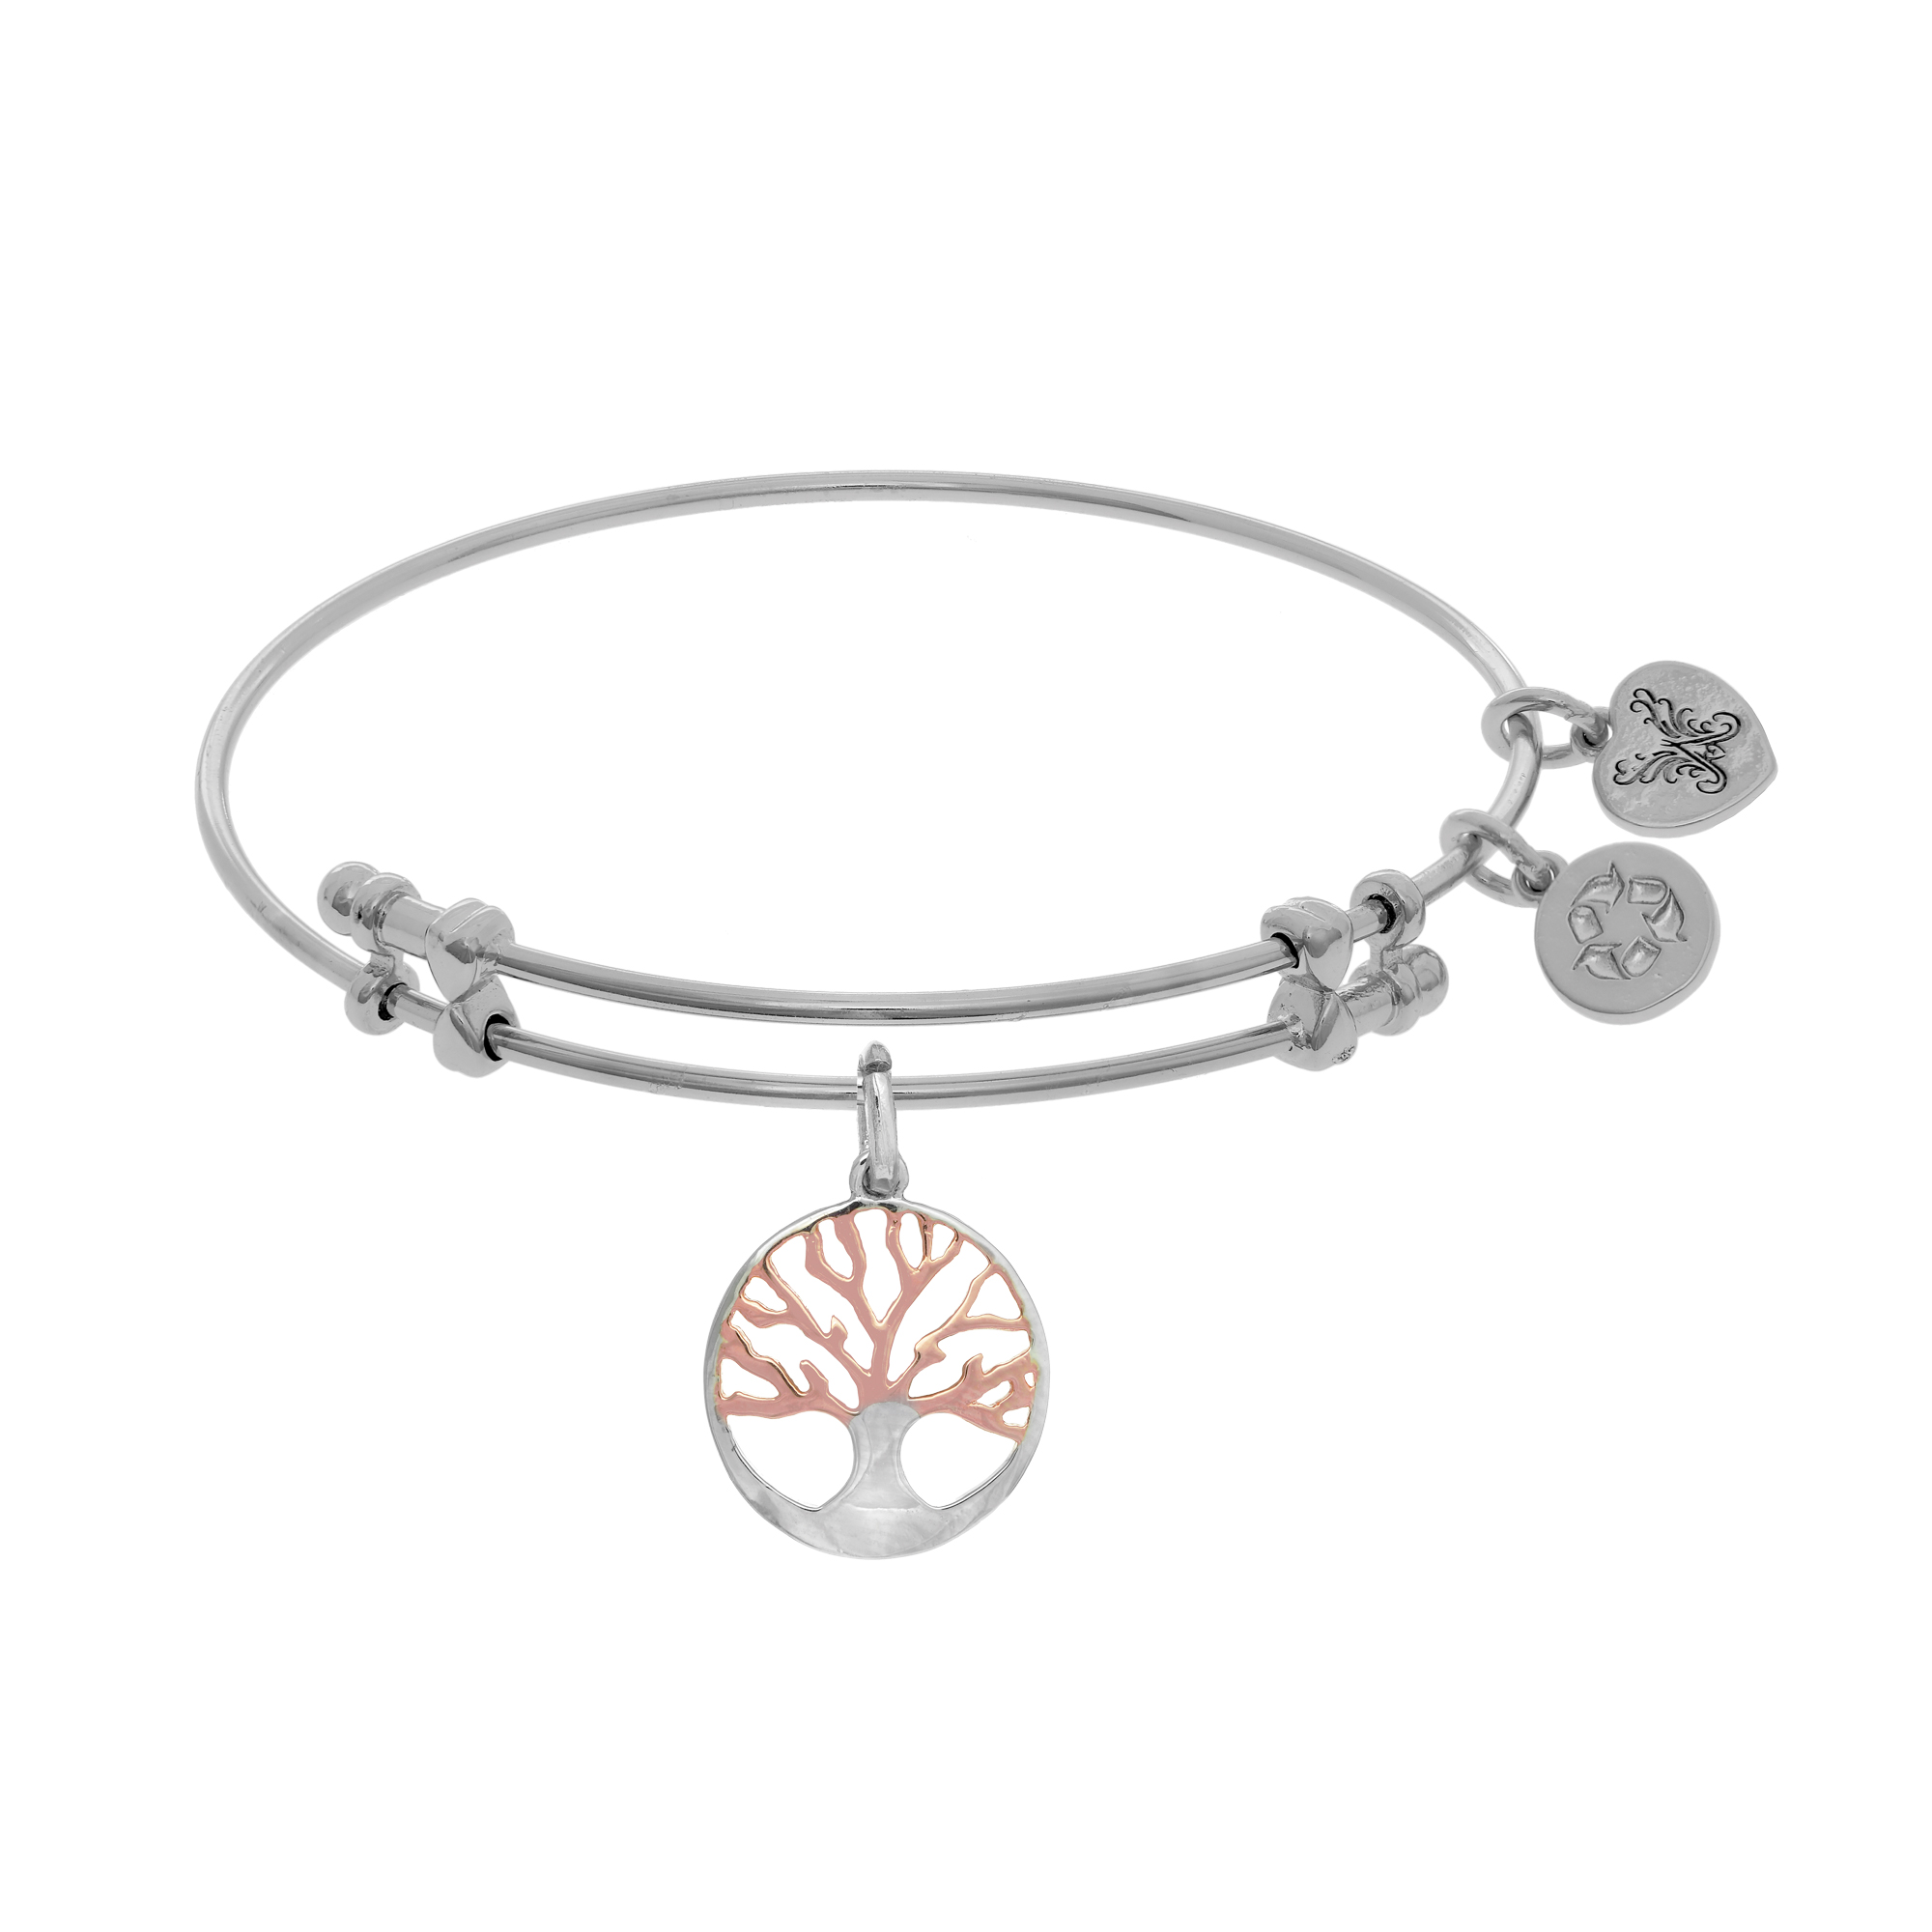 Pink And White Finish Tree Of Life Charm Expandable Bangle Bracelet, 7.25″